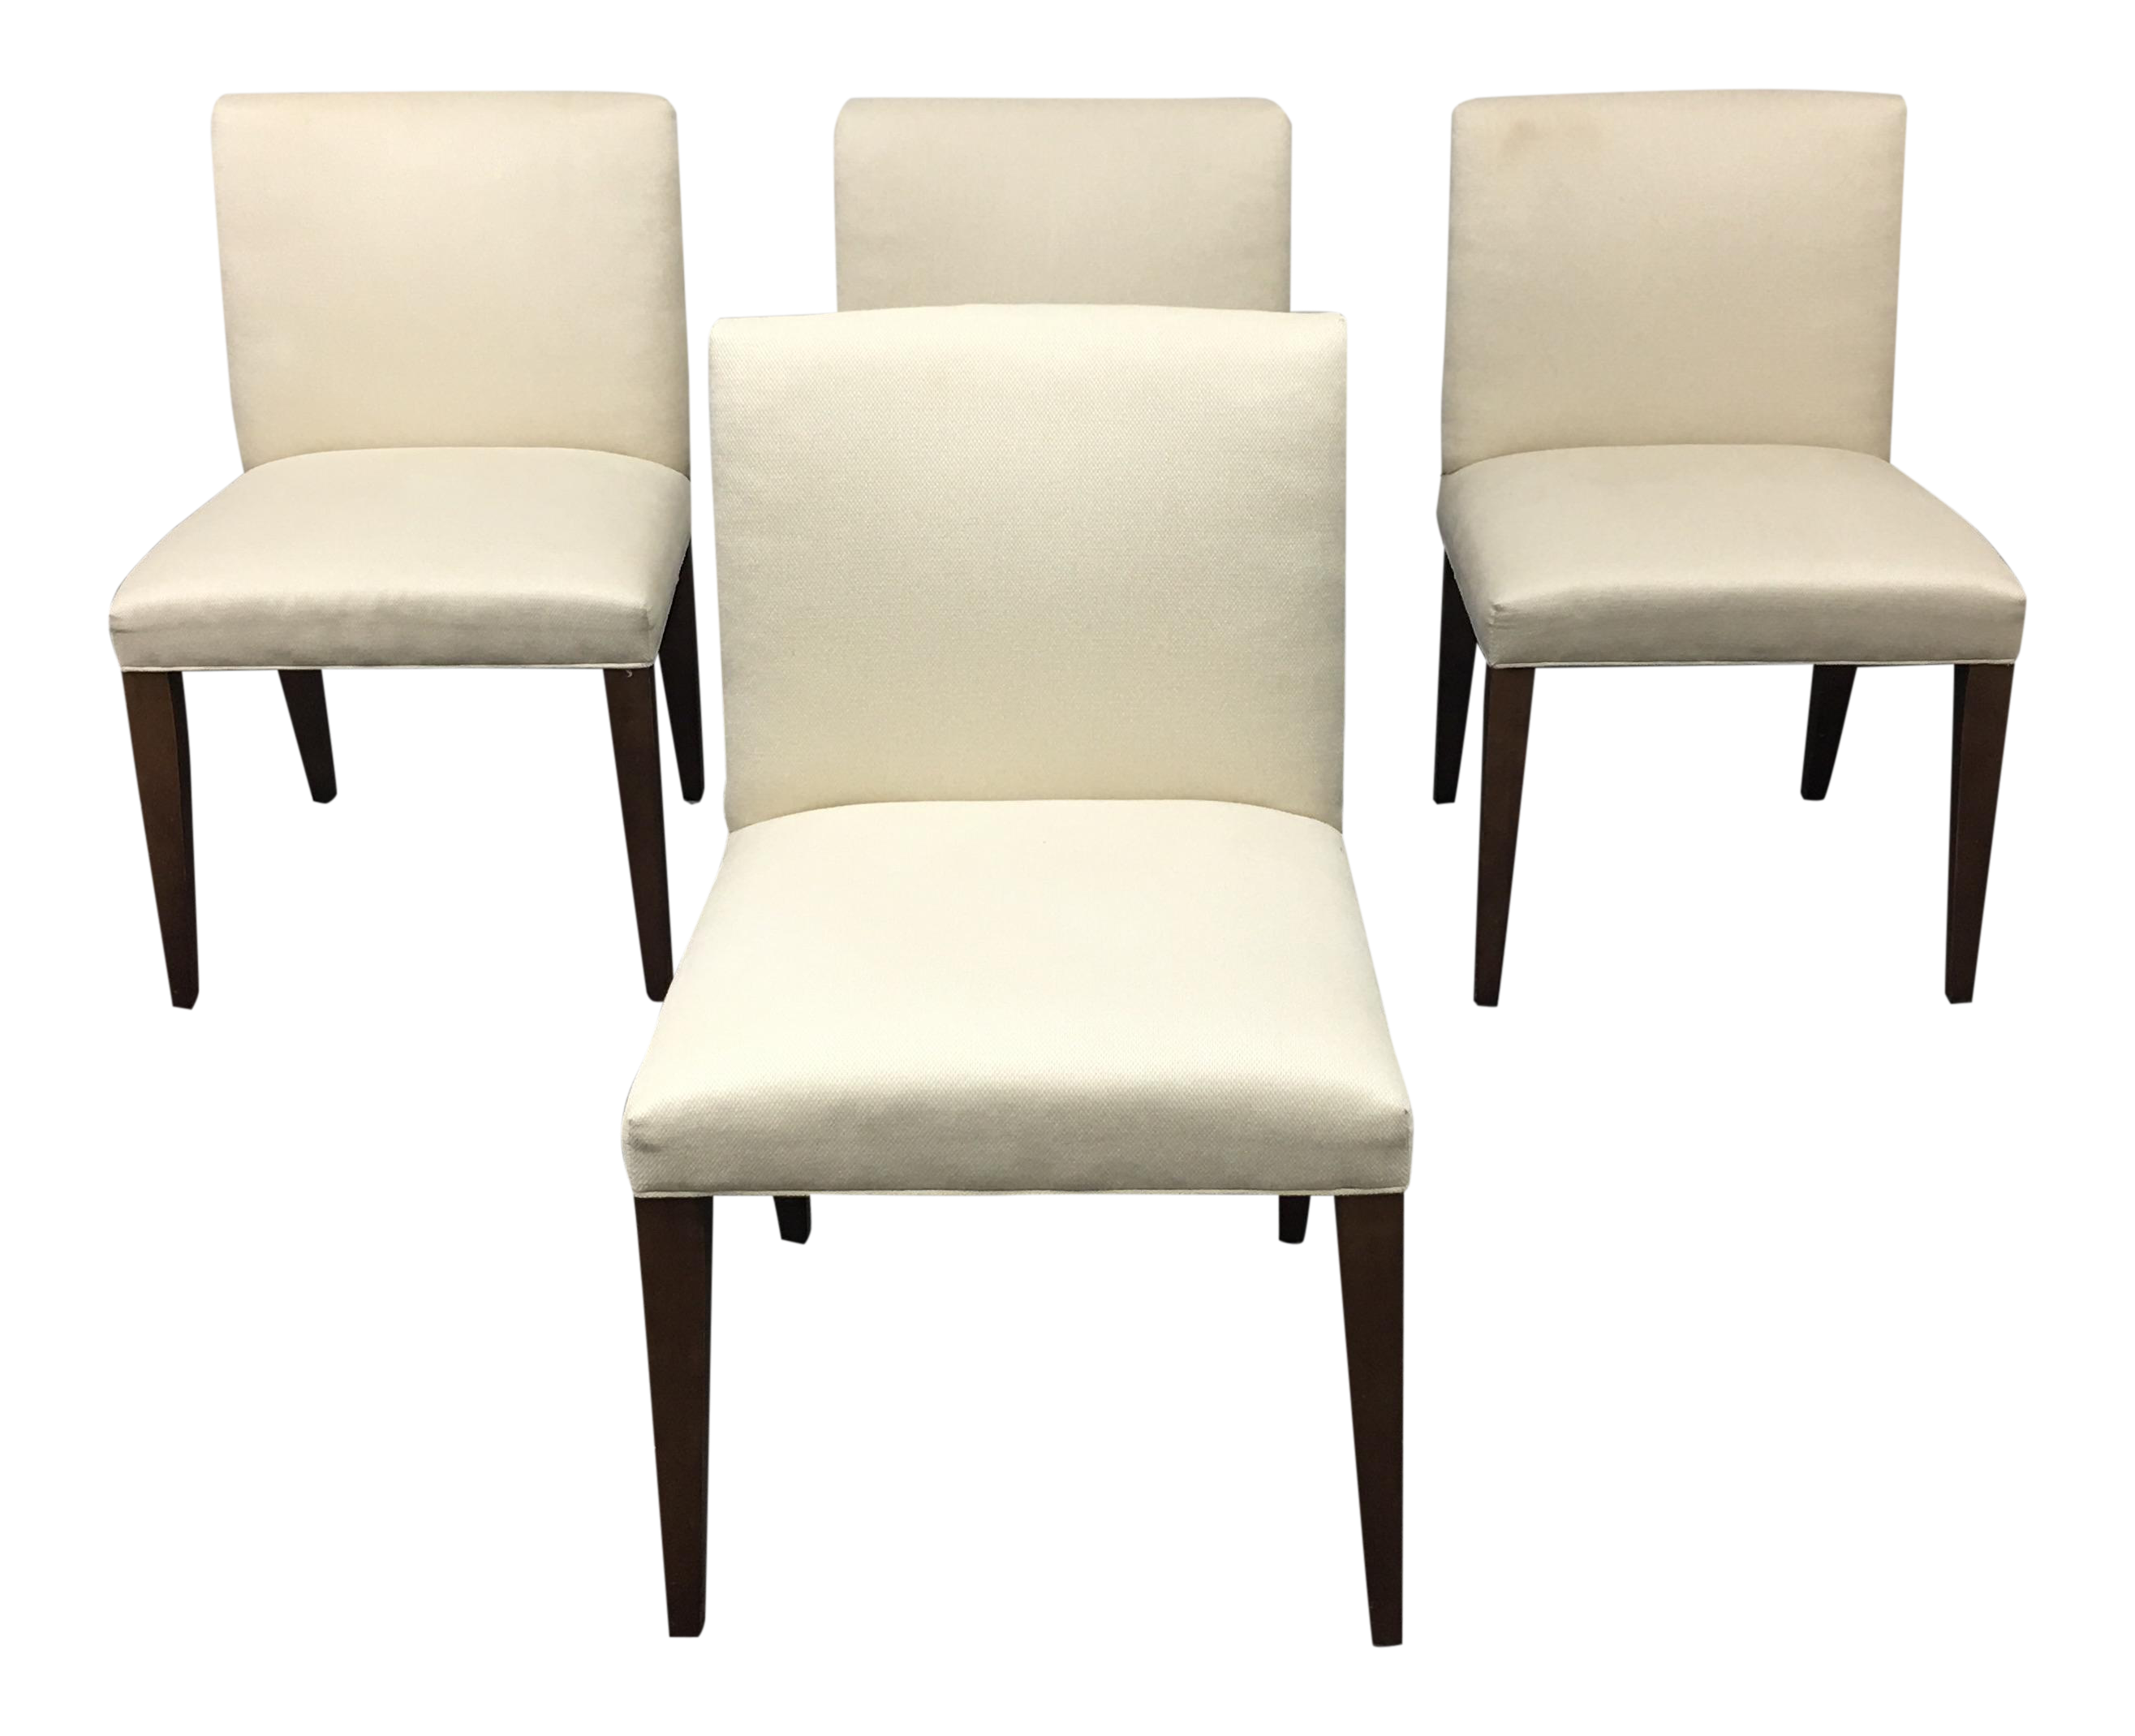 diy lounge board chairs furniture and locations modern table room outlet patio cushions design clearance size of outdoor ideas dining full bistro